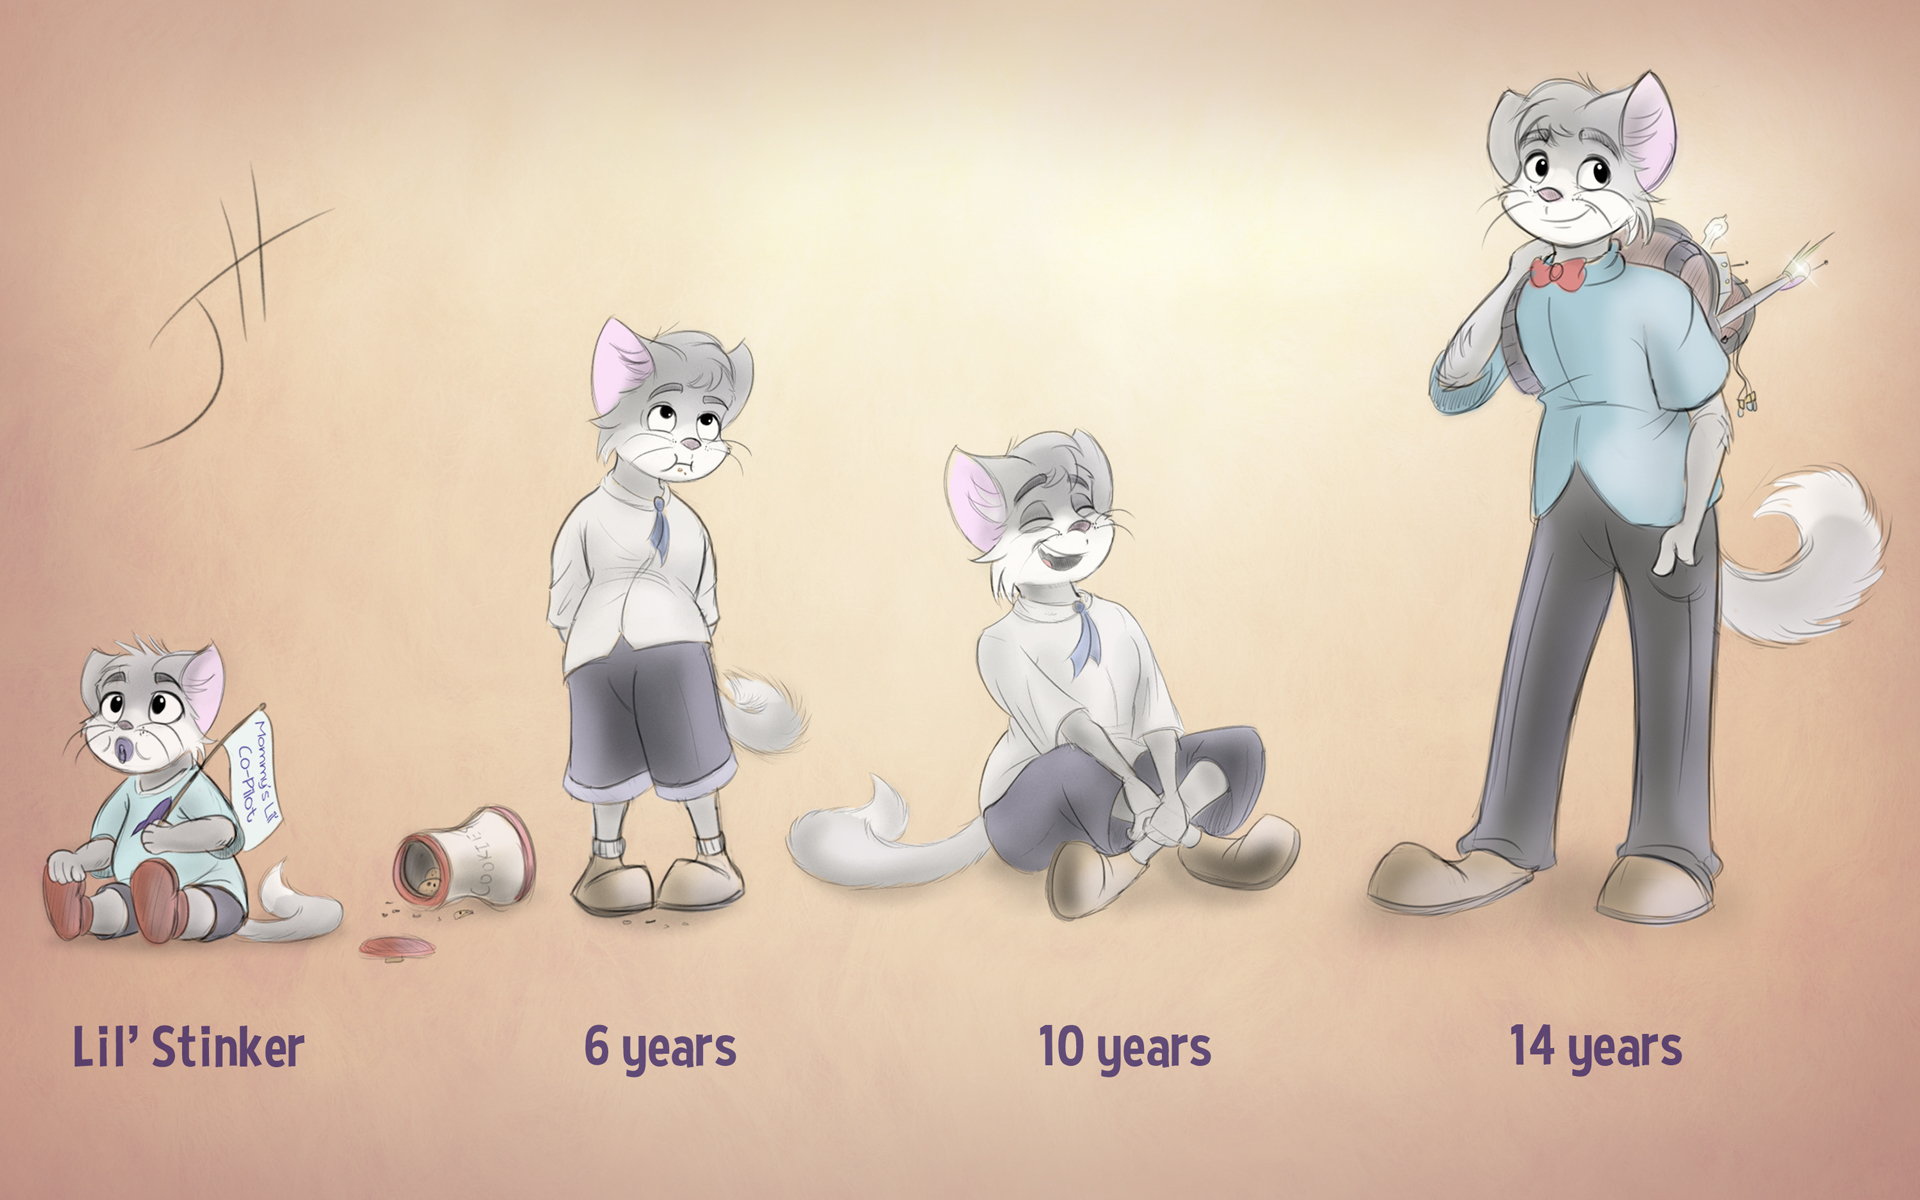 The Ages of Enzo